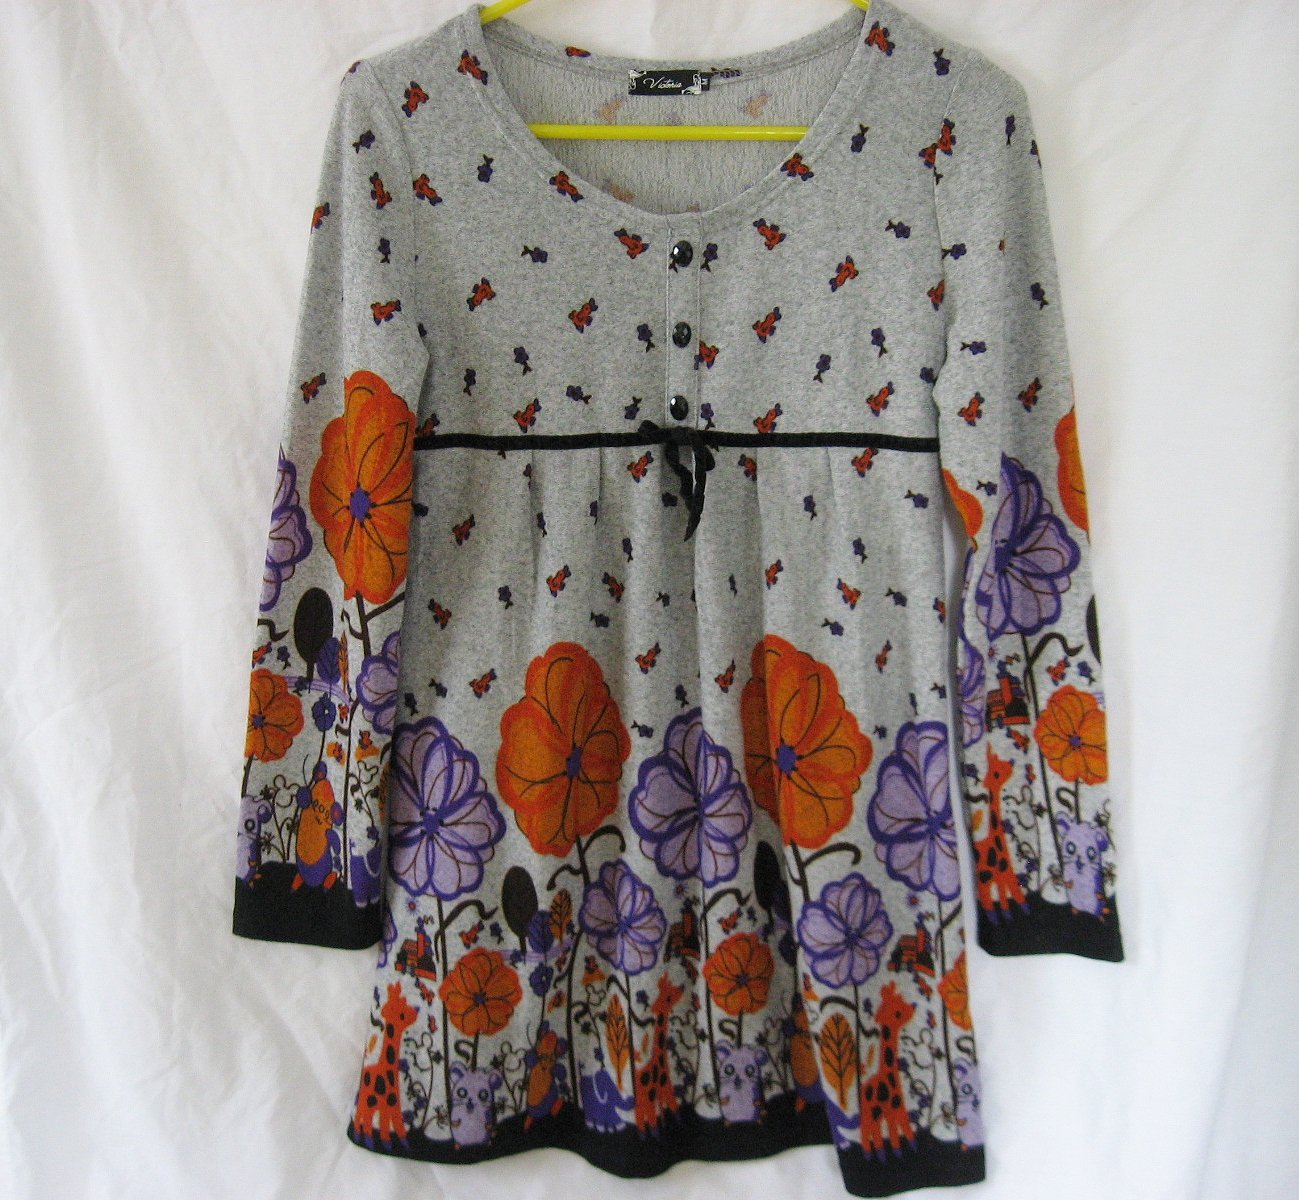 Victoria Knit Top Medium 33 Chest Gray Print Floral Soft Jersey Empire